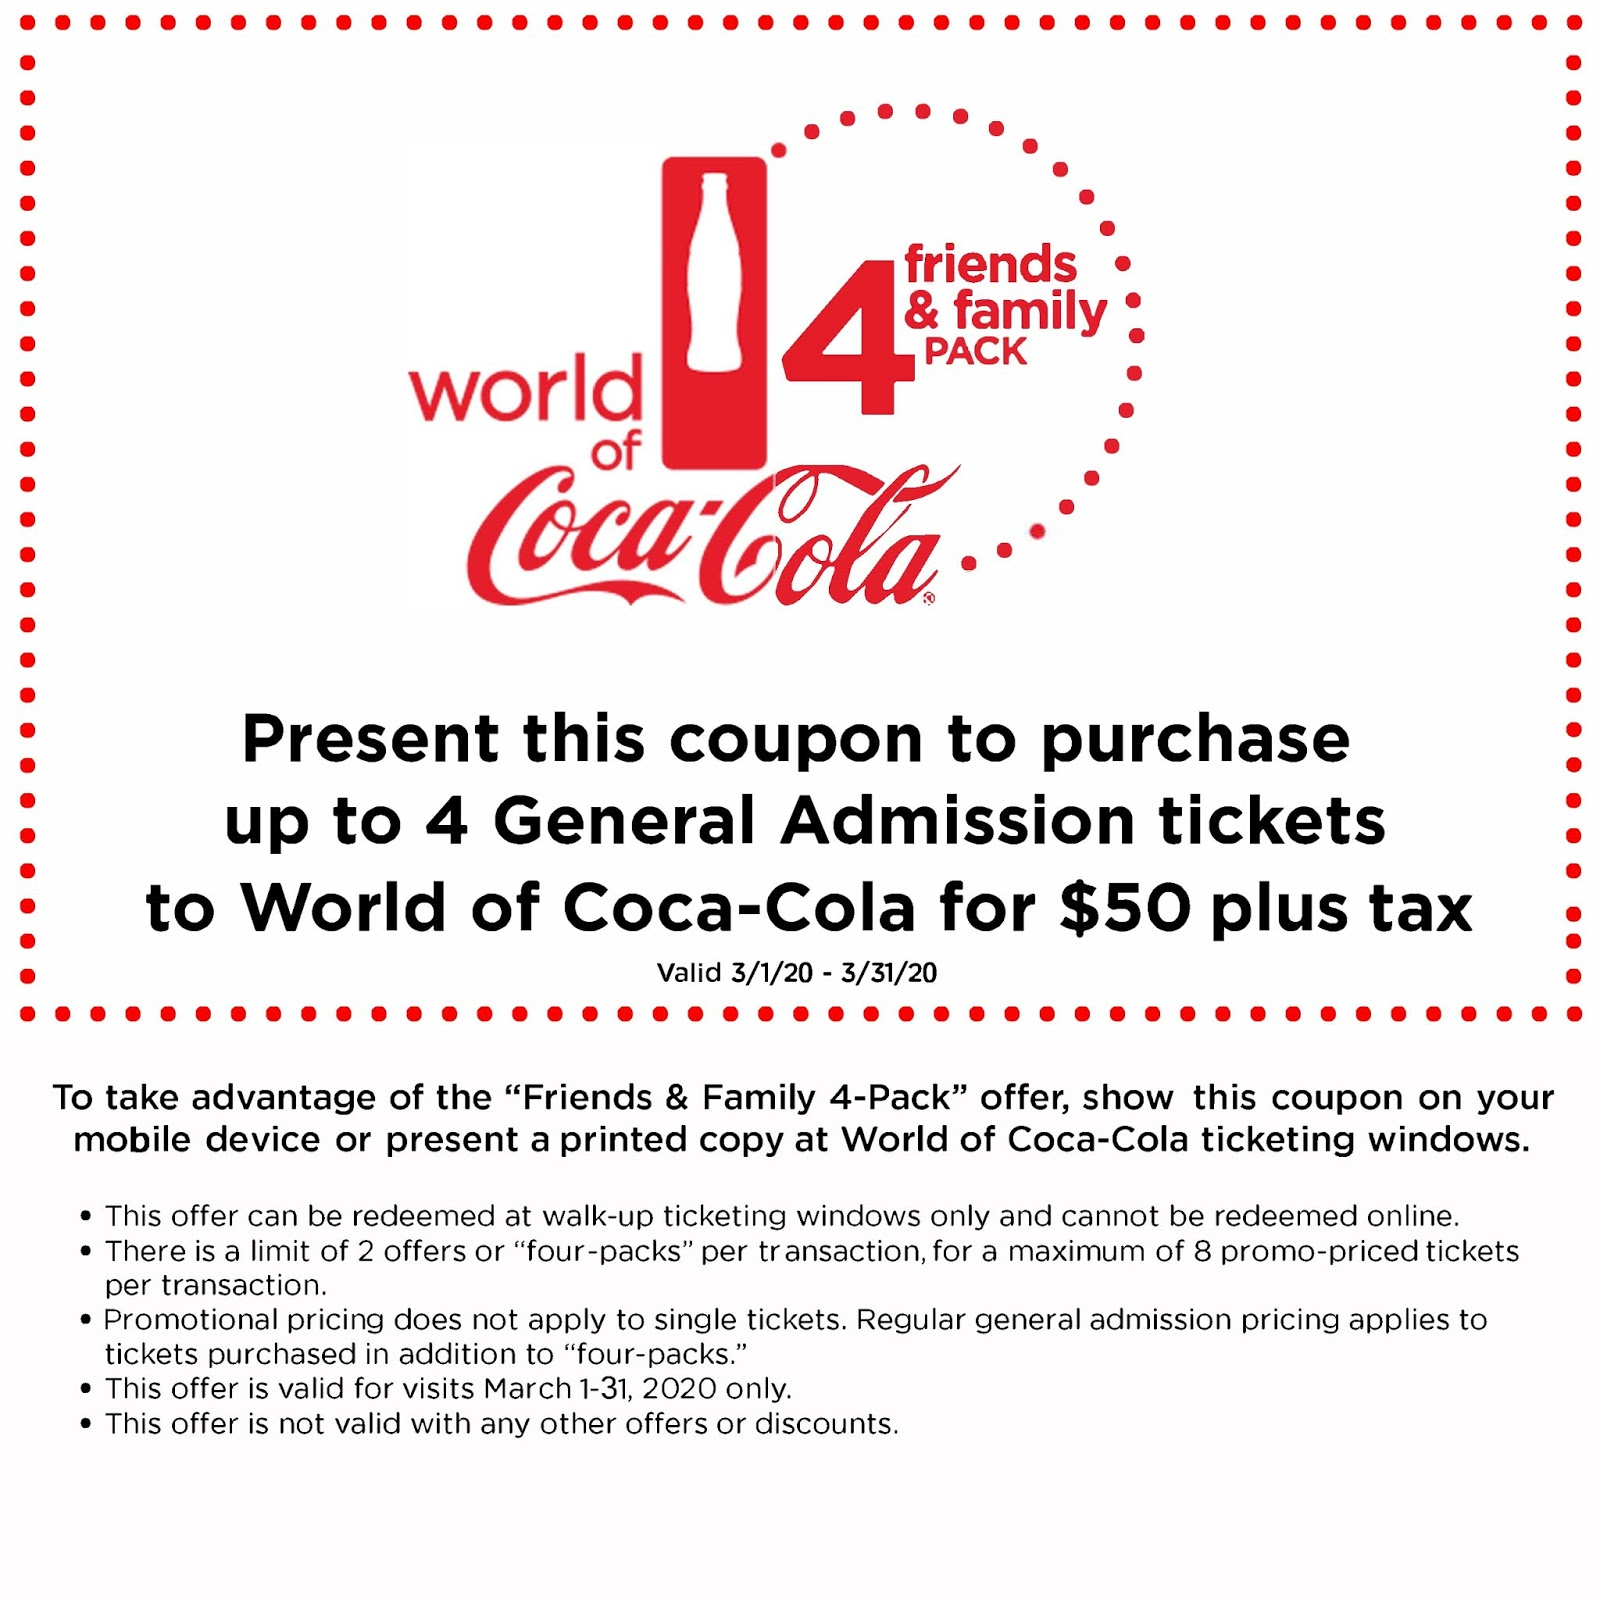 World of Coca-Cola Friends & Family Four-Pack Ticket Offer From March 1st through March 31st